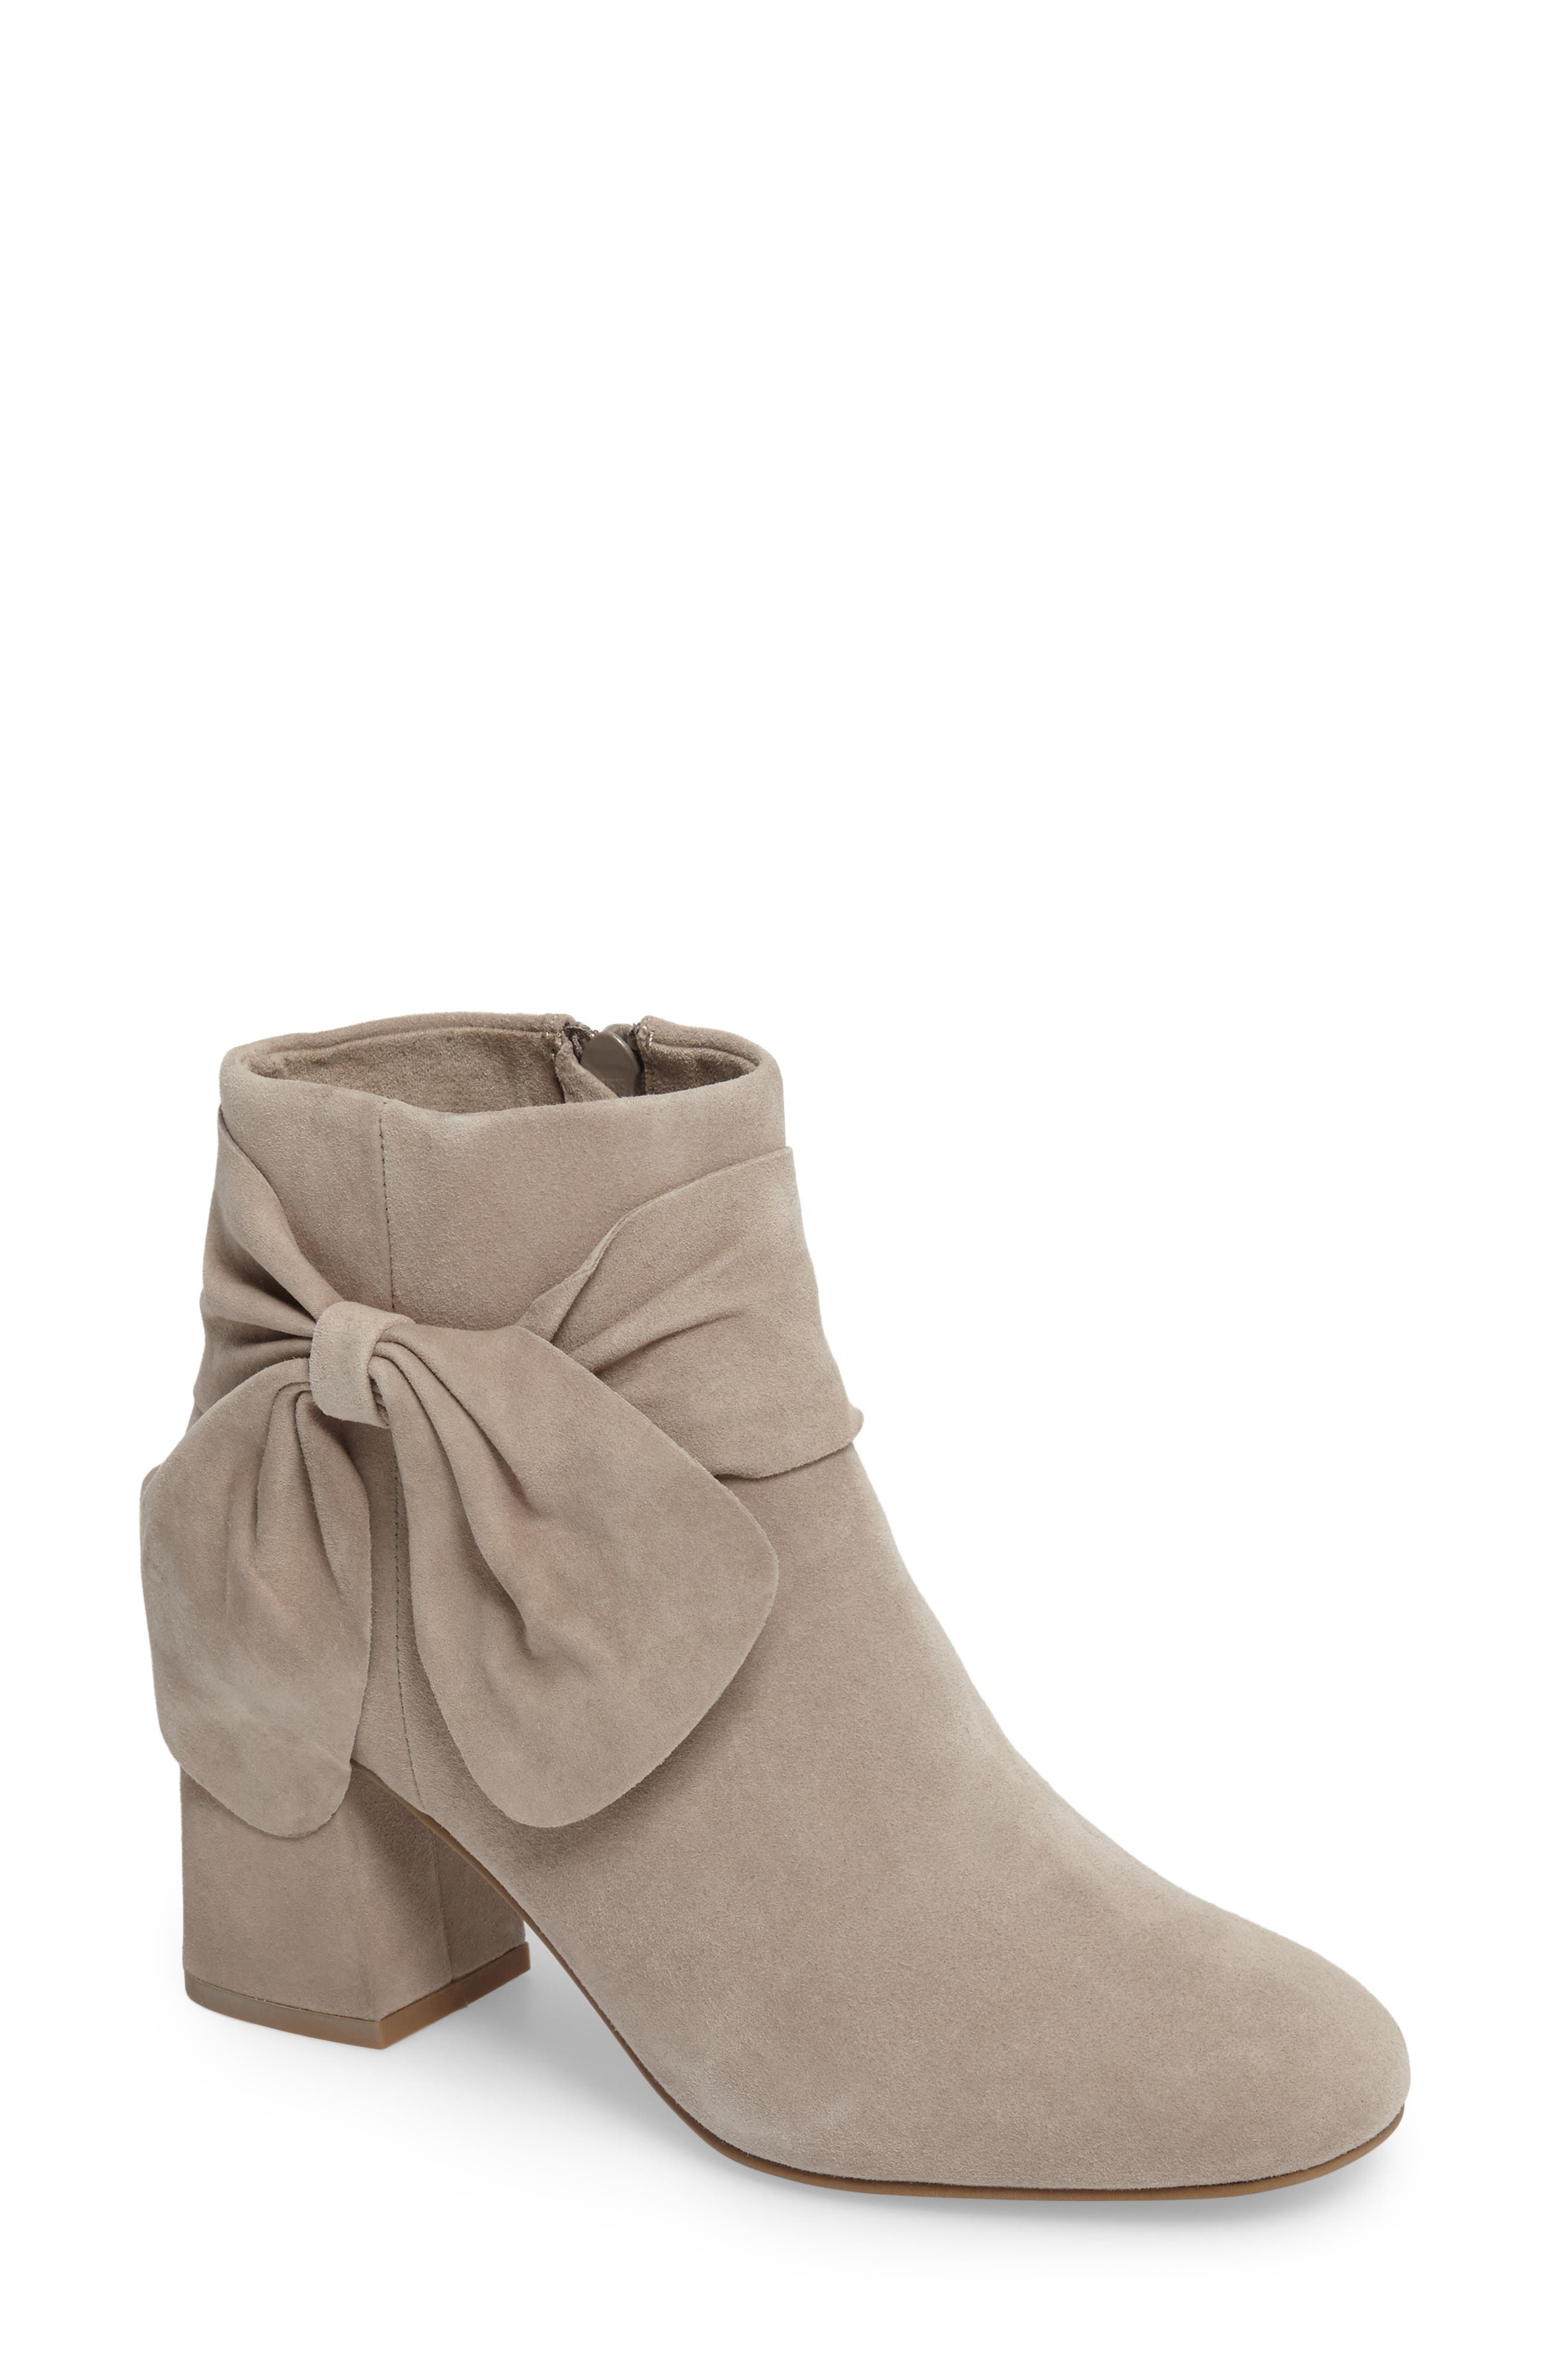 Catwalk Bootie,                             Main thumbnail 1, color,                             Taupe Suede